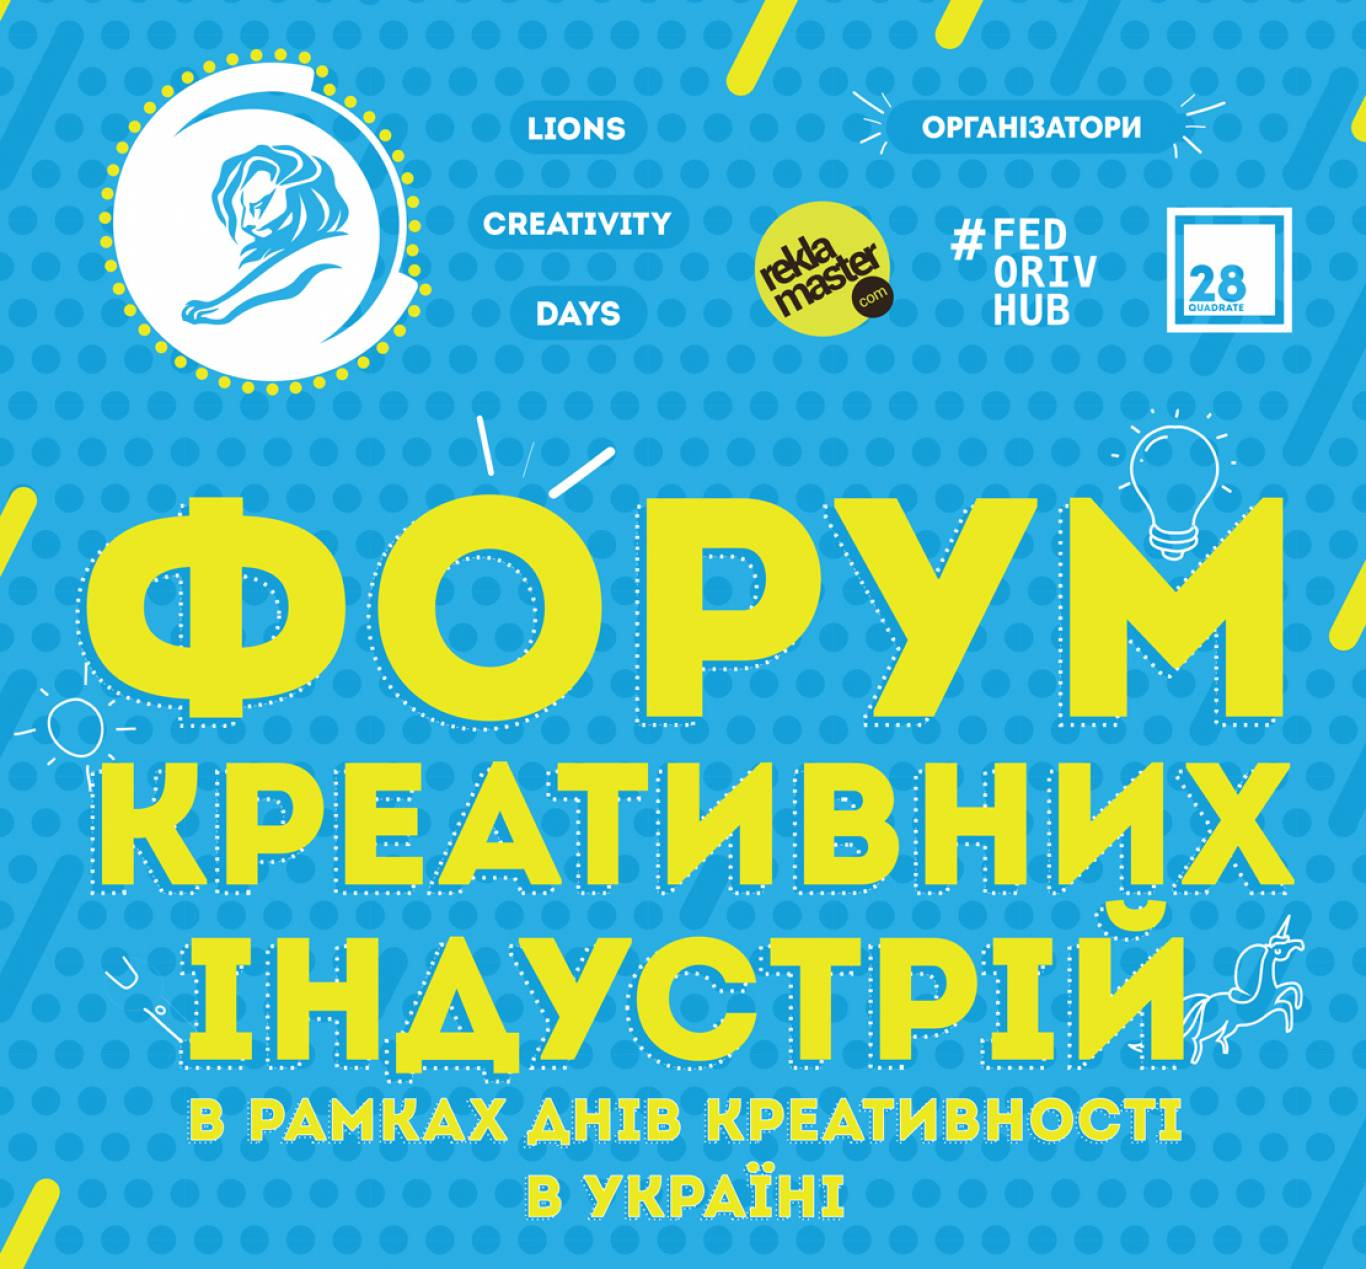 Lions Creativity Days в FEDORIV Hub